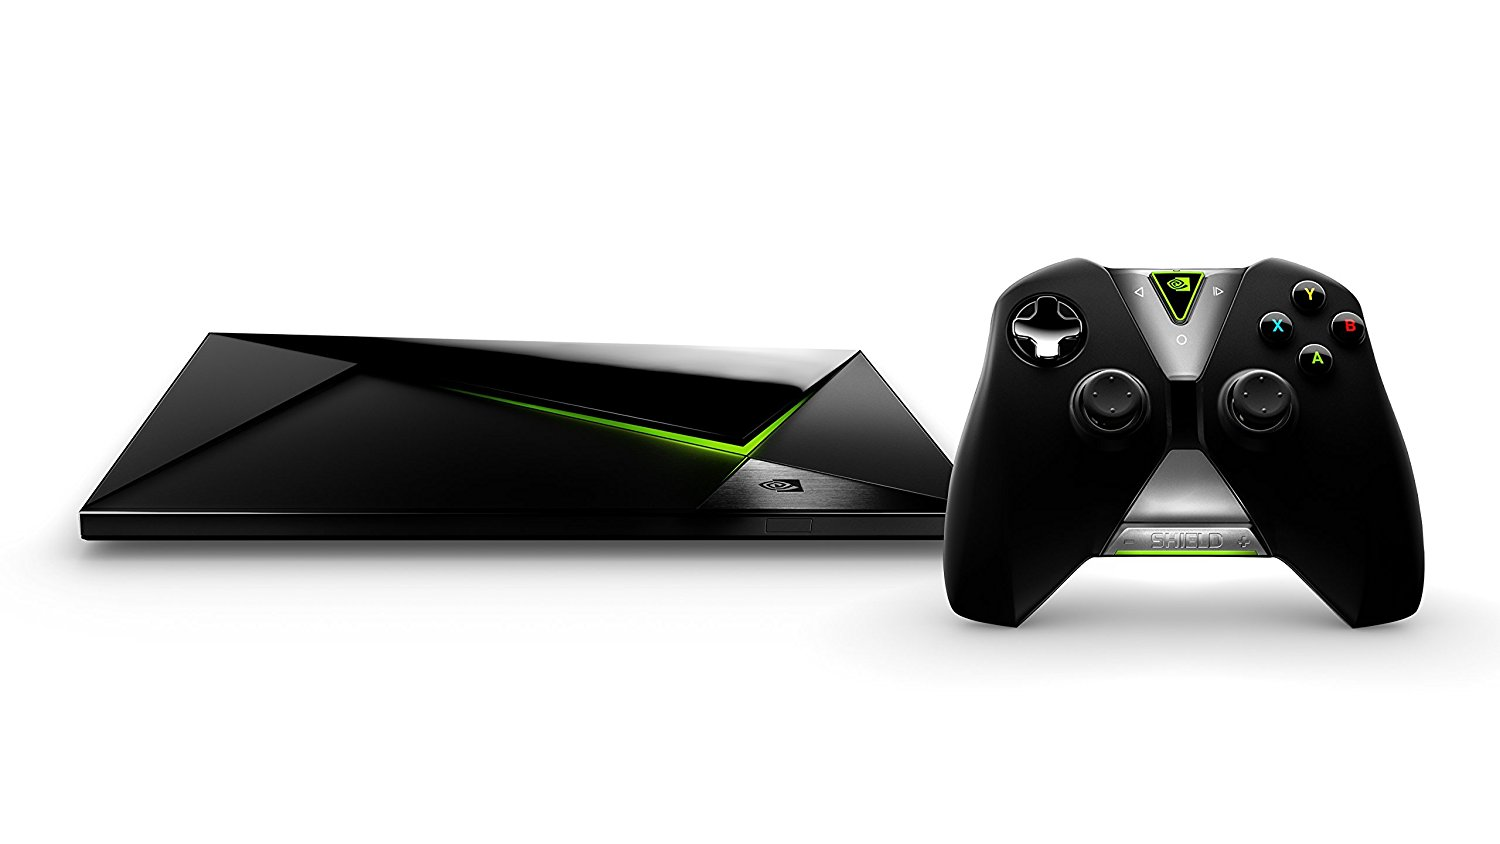 The Nvidia Shield for Kodi is A Great Christmas Idea